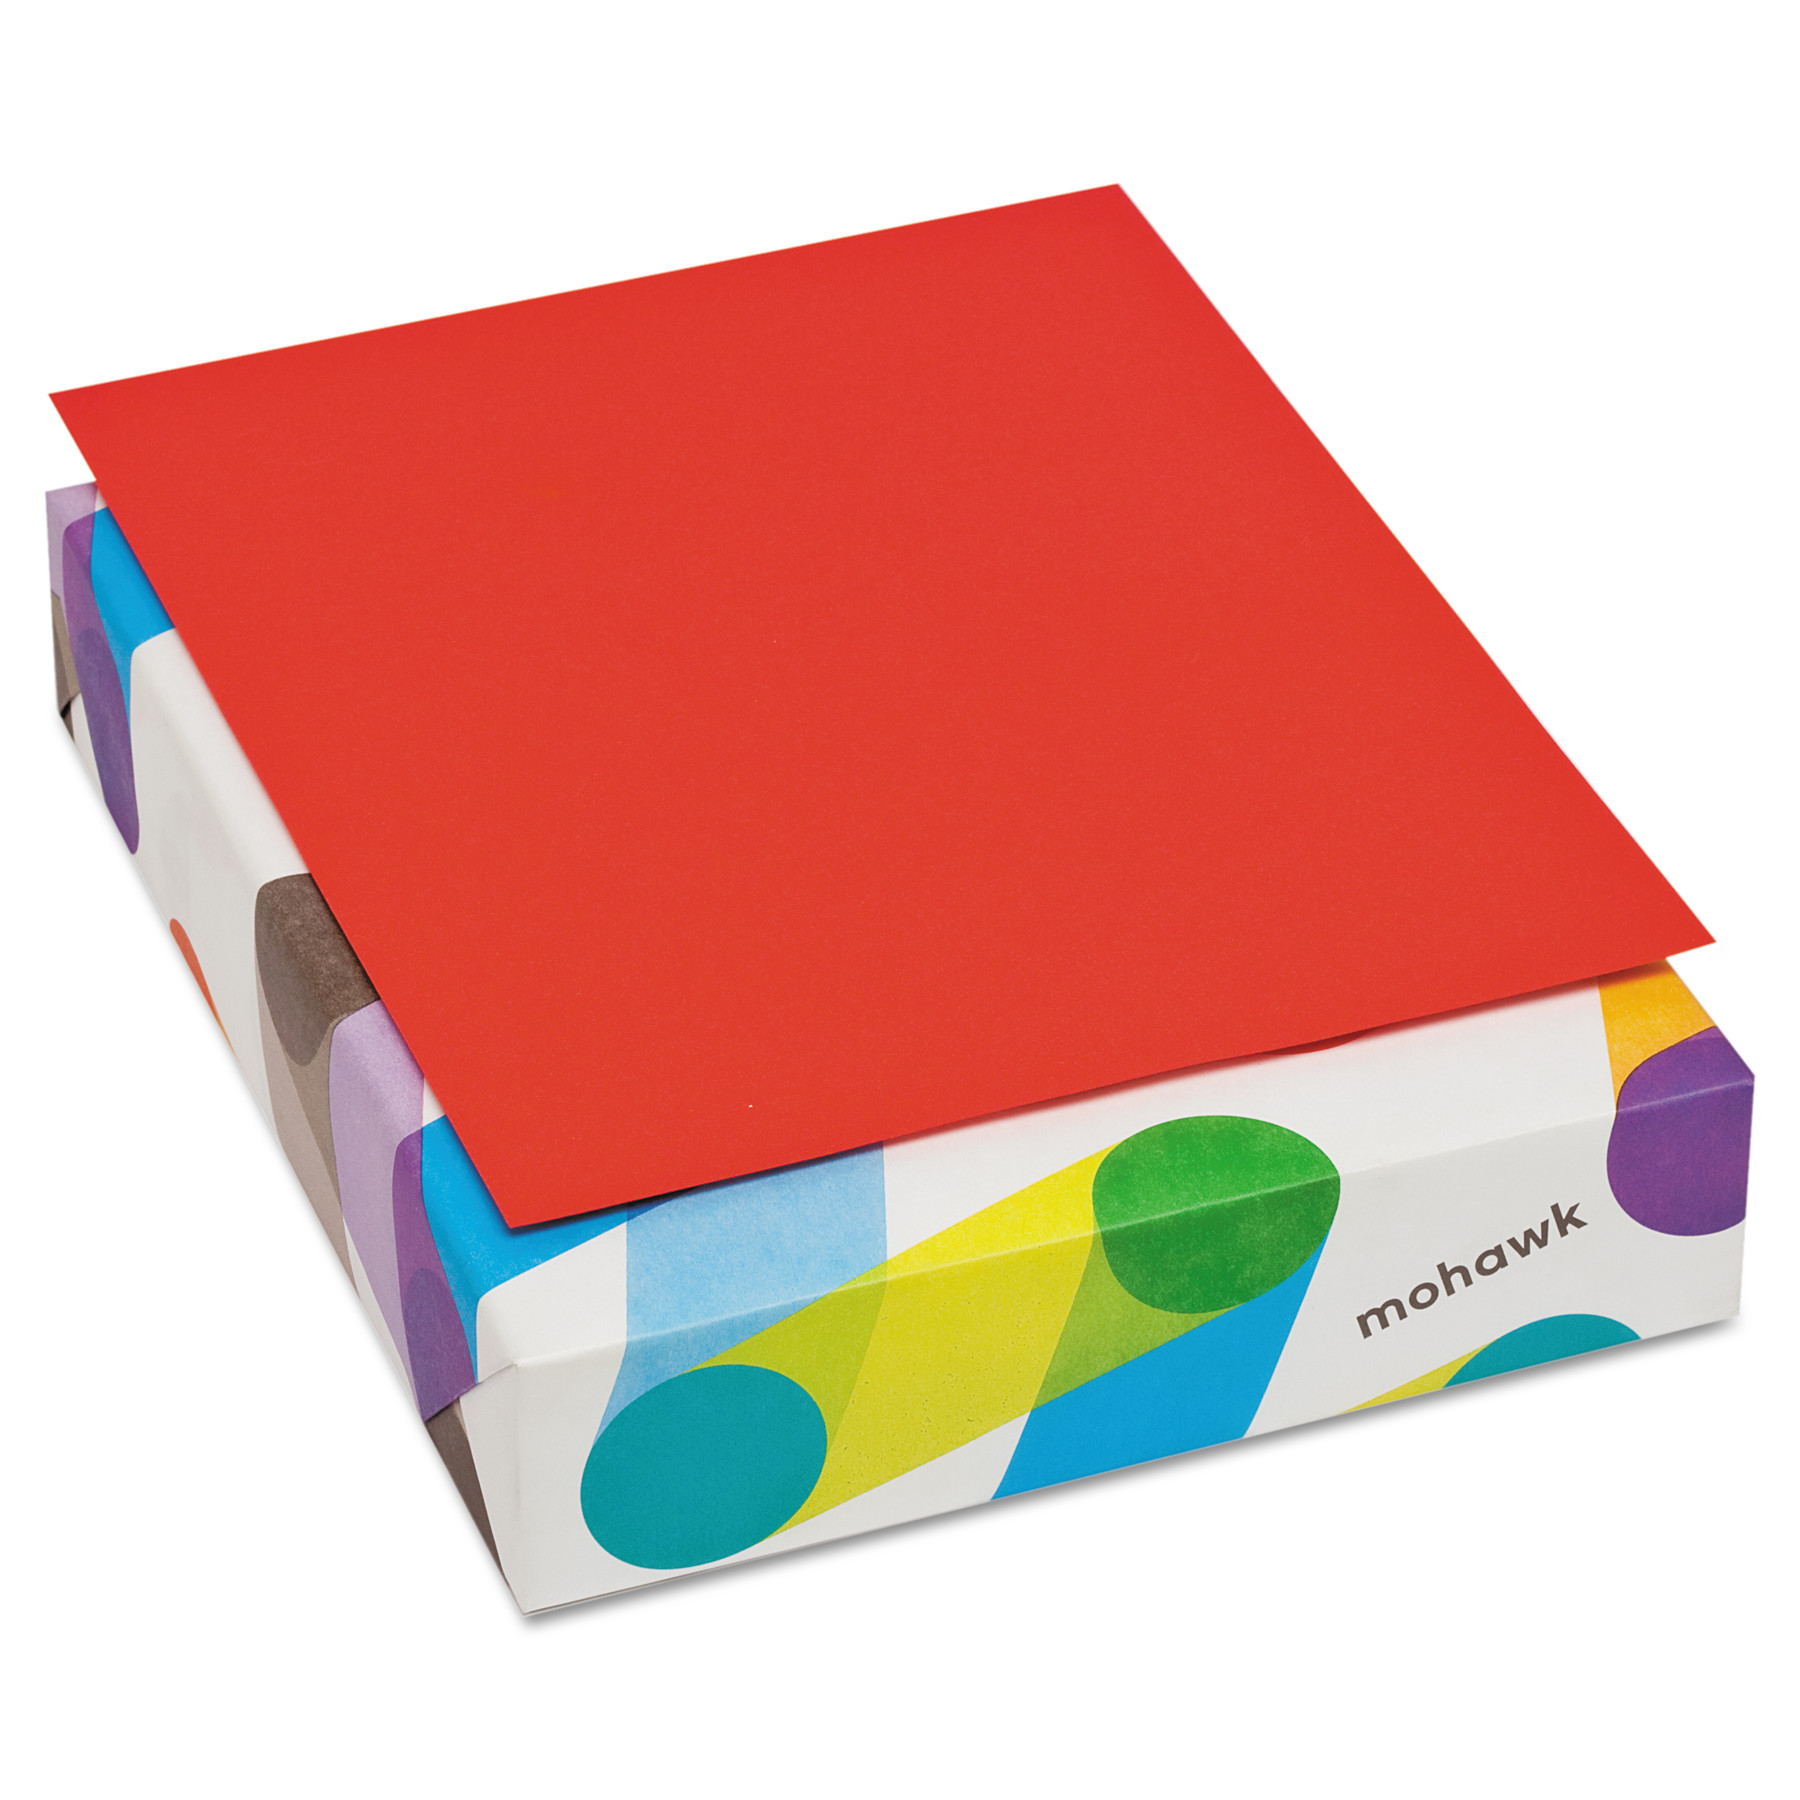 Mohawk BriteHue Multipurpose Colored Paper, 20lb, 8 1/2 x 11, Red, 500 Sheets -MOW471608